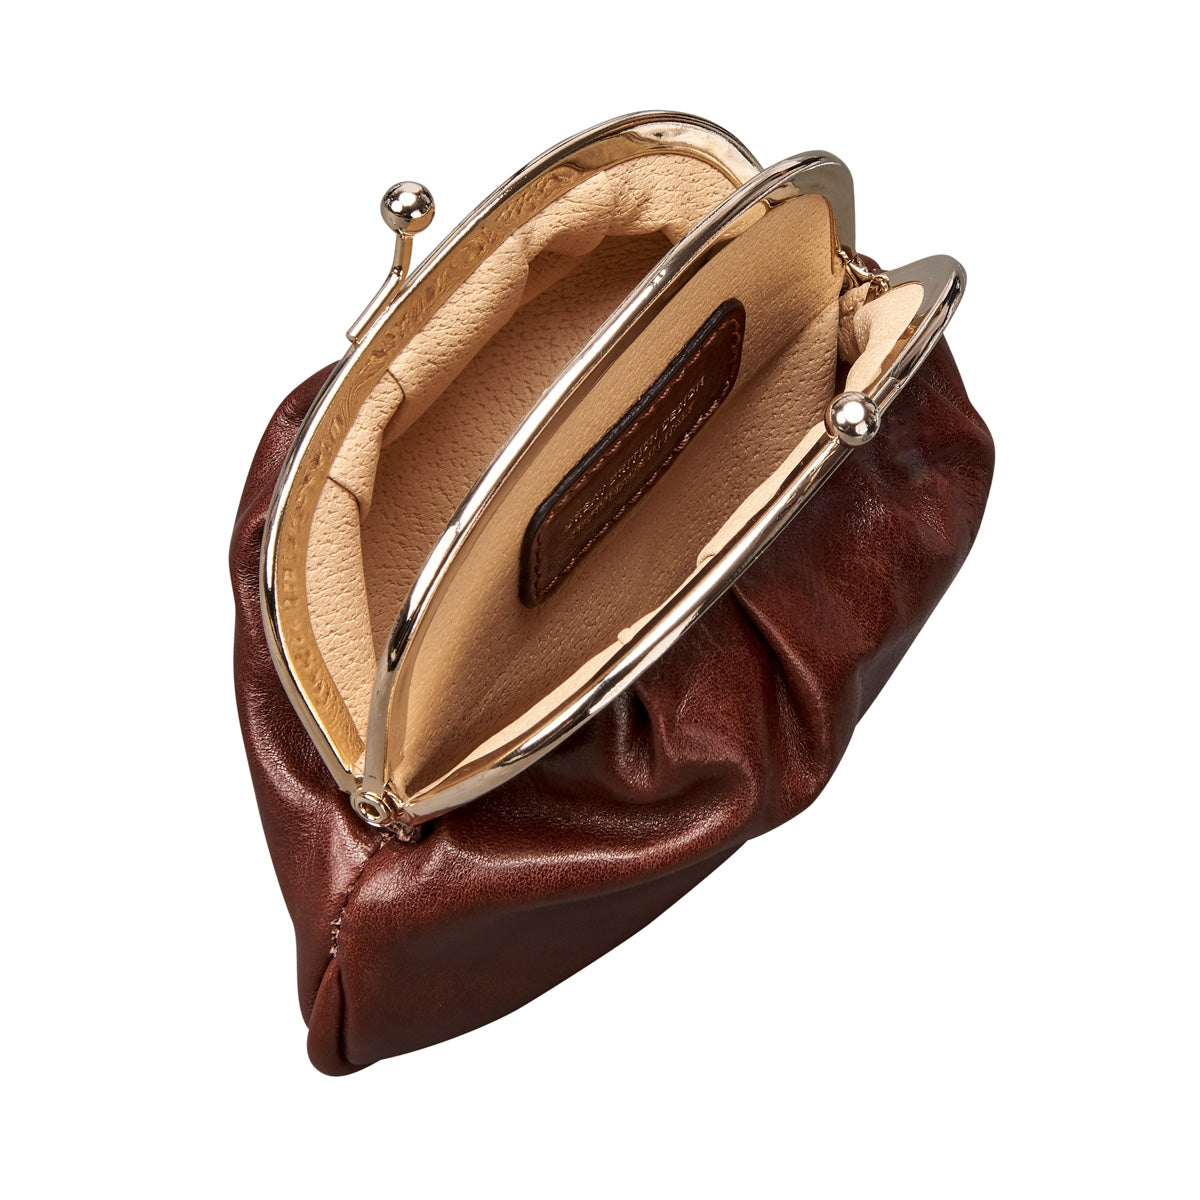 Image 5 of the 'Sabina' Chestnut Veg-Tanned Leather Purse